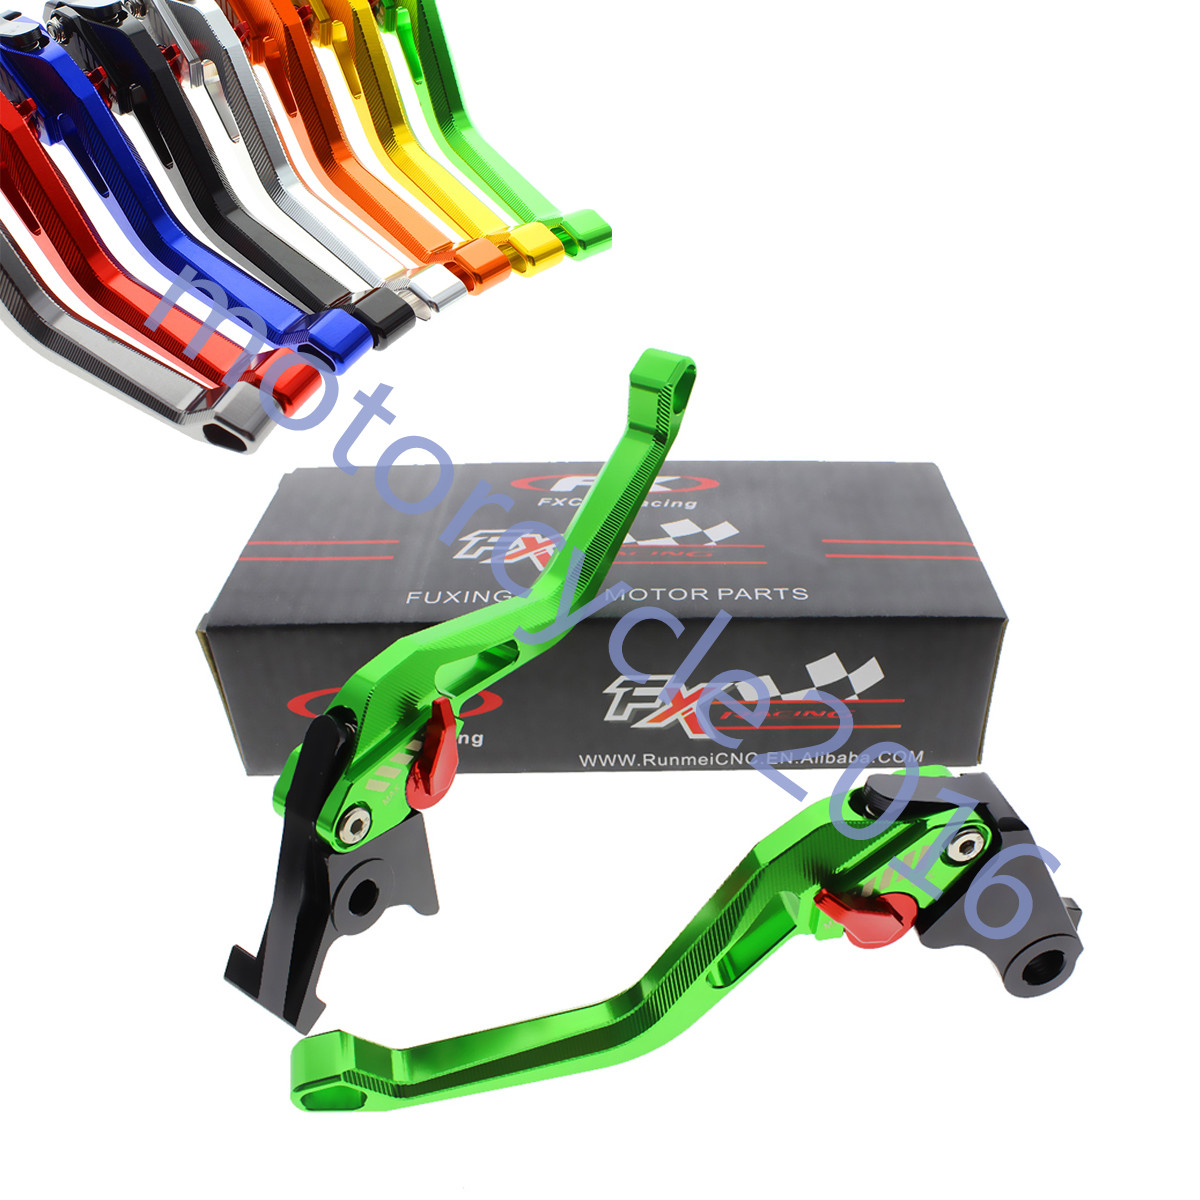 FXCNC CNC 3D New Rhombus Hollow Adjustable Brake Clutch Levers 8 Colors A Pair For BMW R1200R R1200RT/SE R1200GS K1200S R1200ST billet alu folding adjustable brake clutch levers for motoguzzi griso 850 breva 1100 norge 1200 06 2013 07 08 1200 sport stelvio